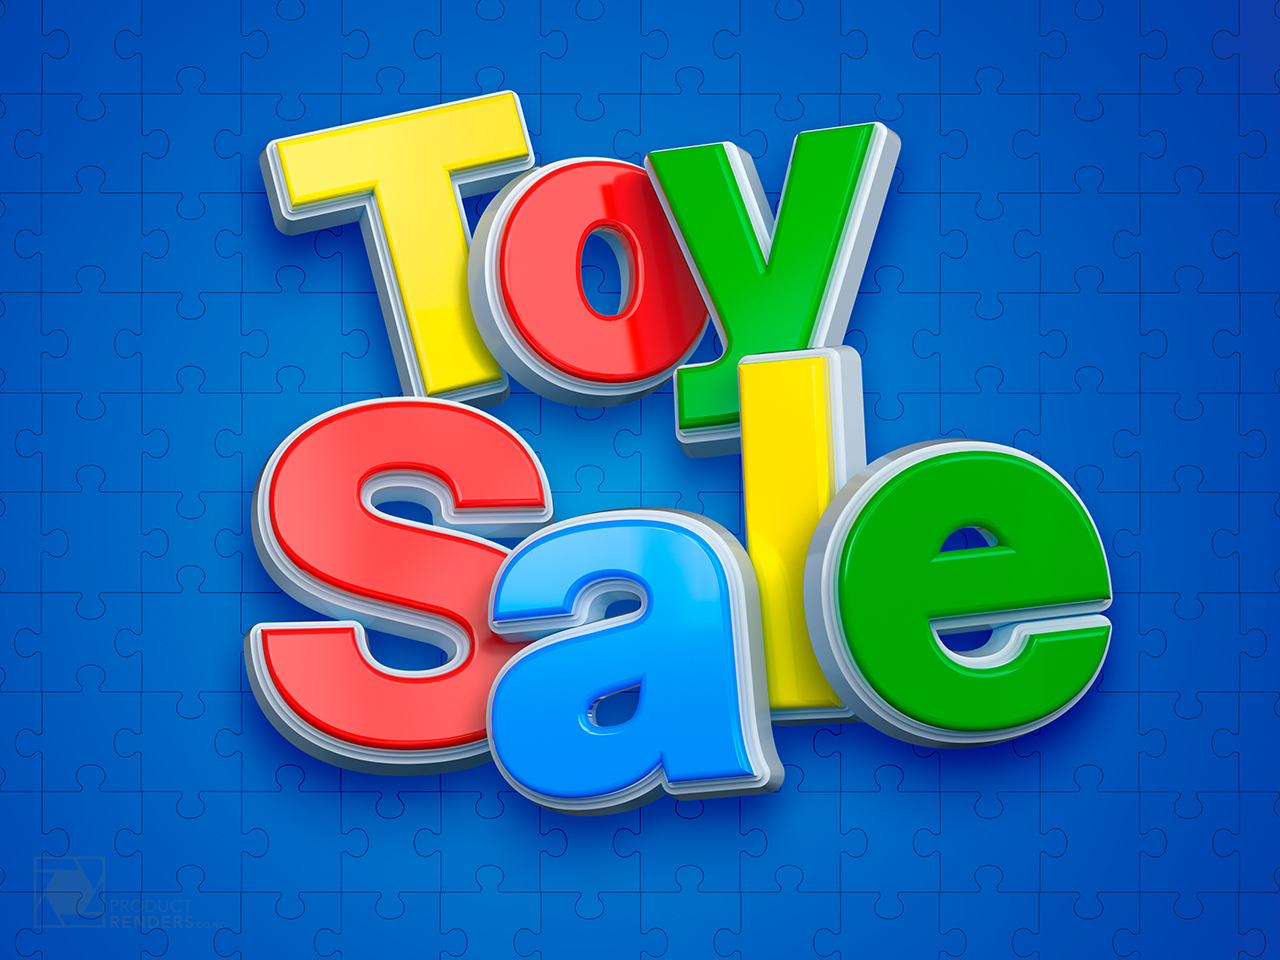 3D render of the logo for the yearly toy sale at the Farmers retail store